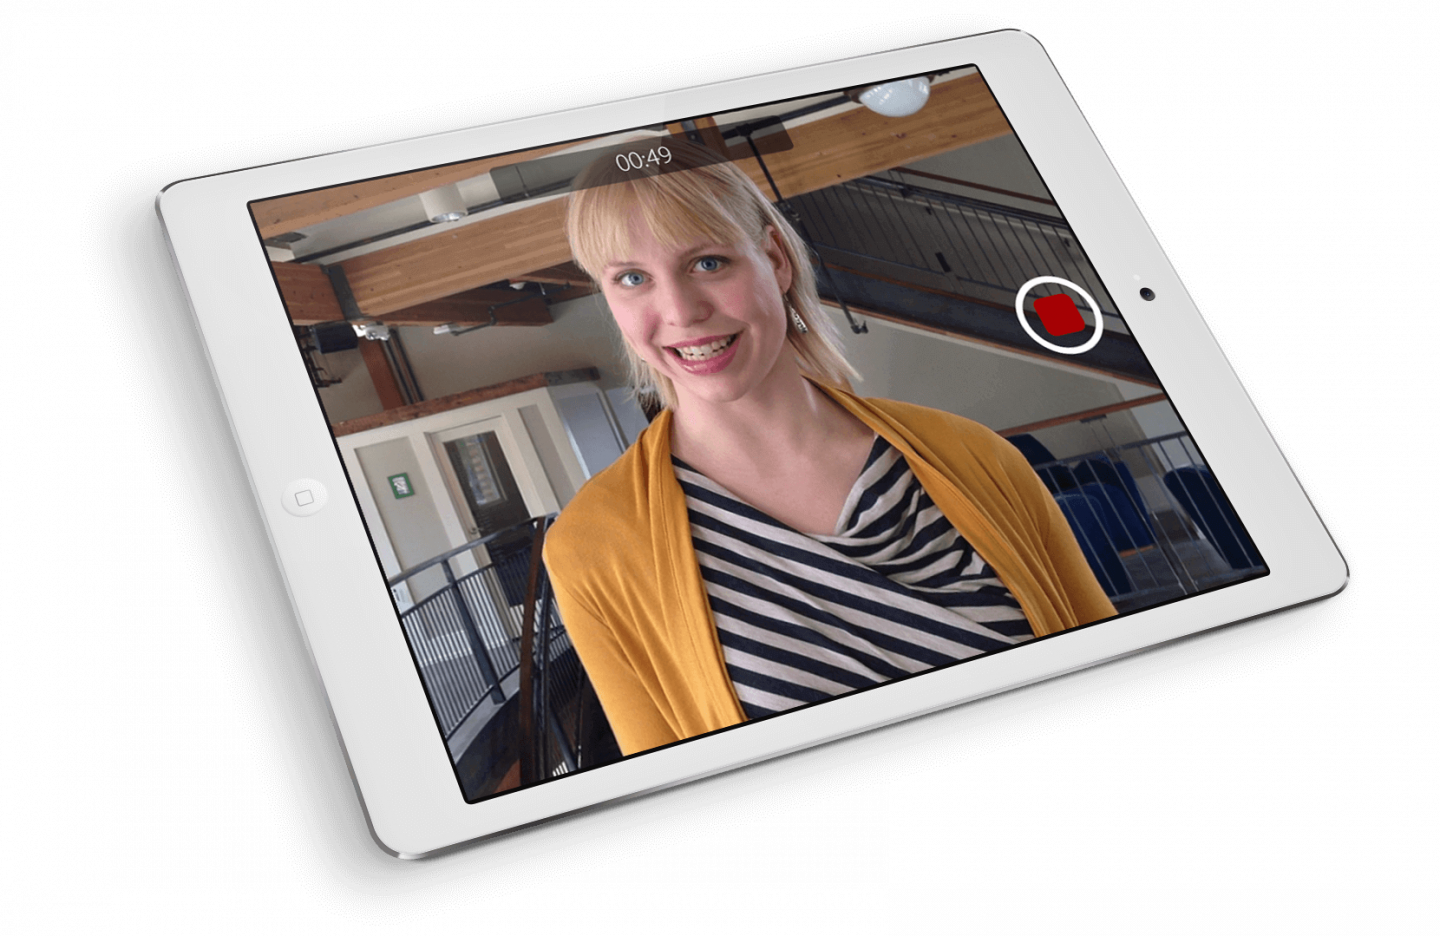 Panopto's easy to set up distributed recording enables synced video recording of company town hall events